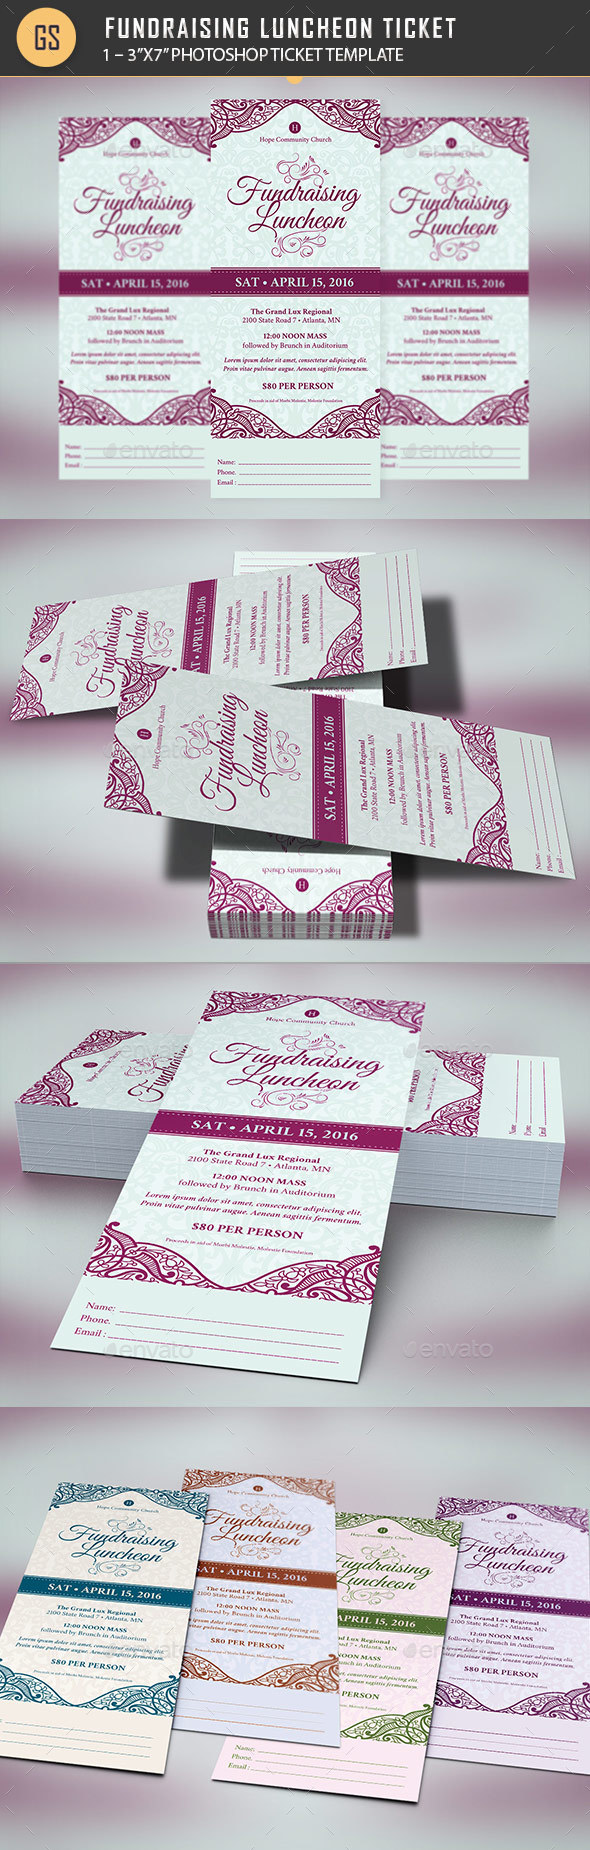 Luncheon Graphics, Designs & Templates from GraphicRiver